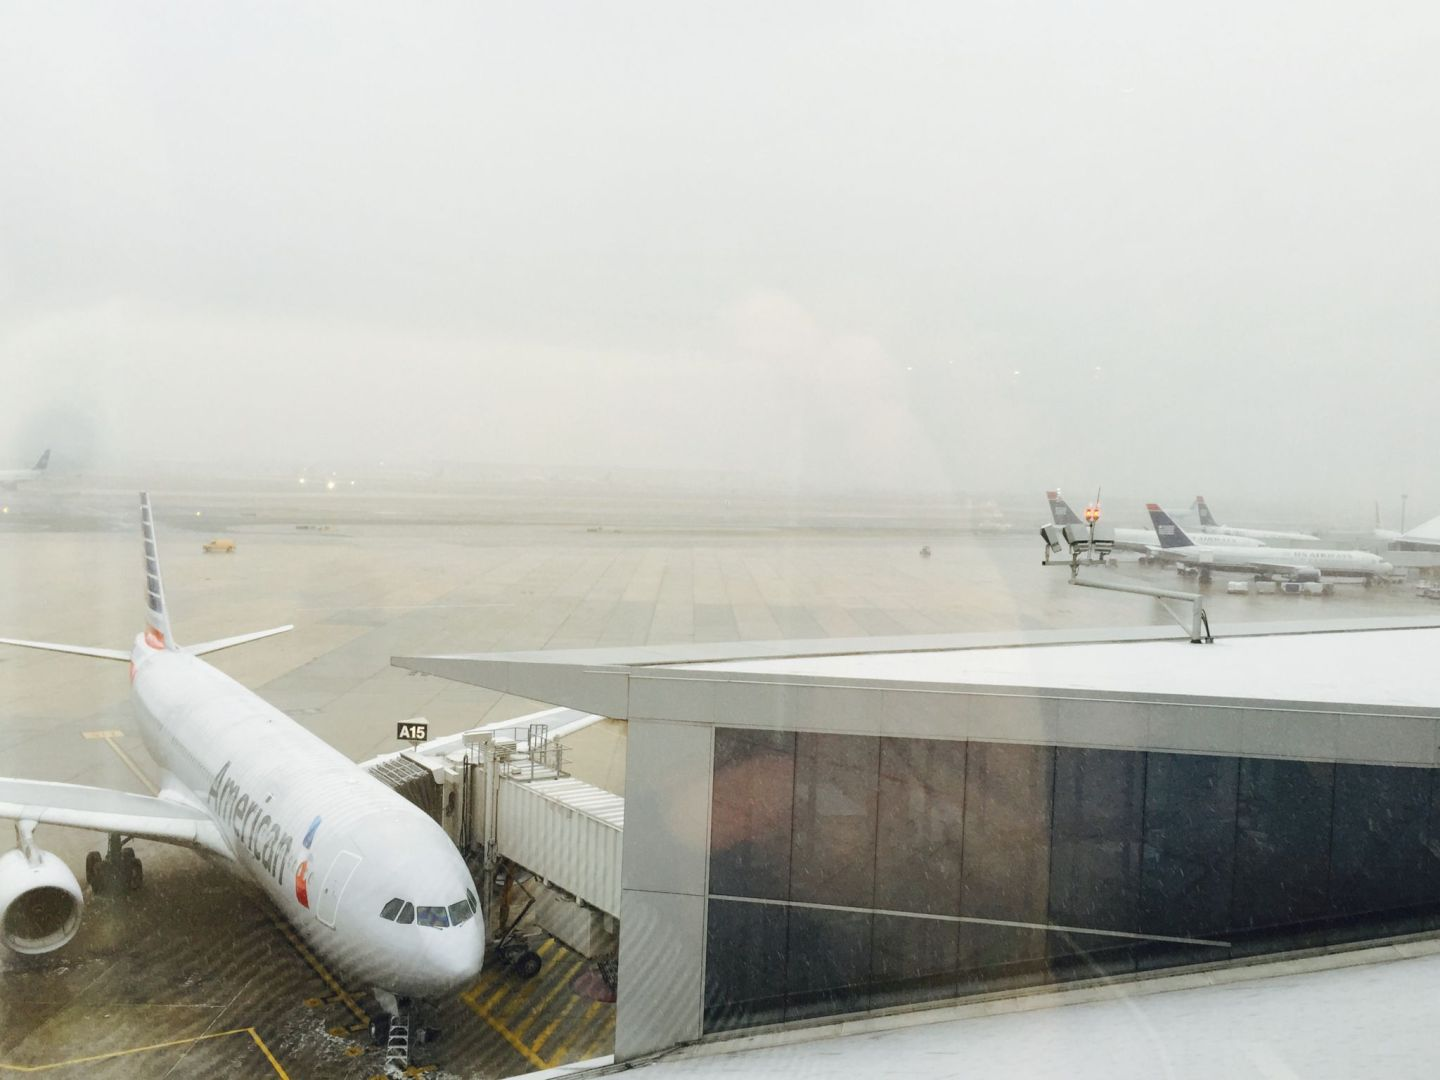 A whiteout gradually engulfs the runway. Pic by @jabberingjourno